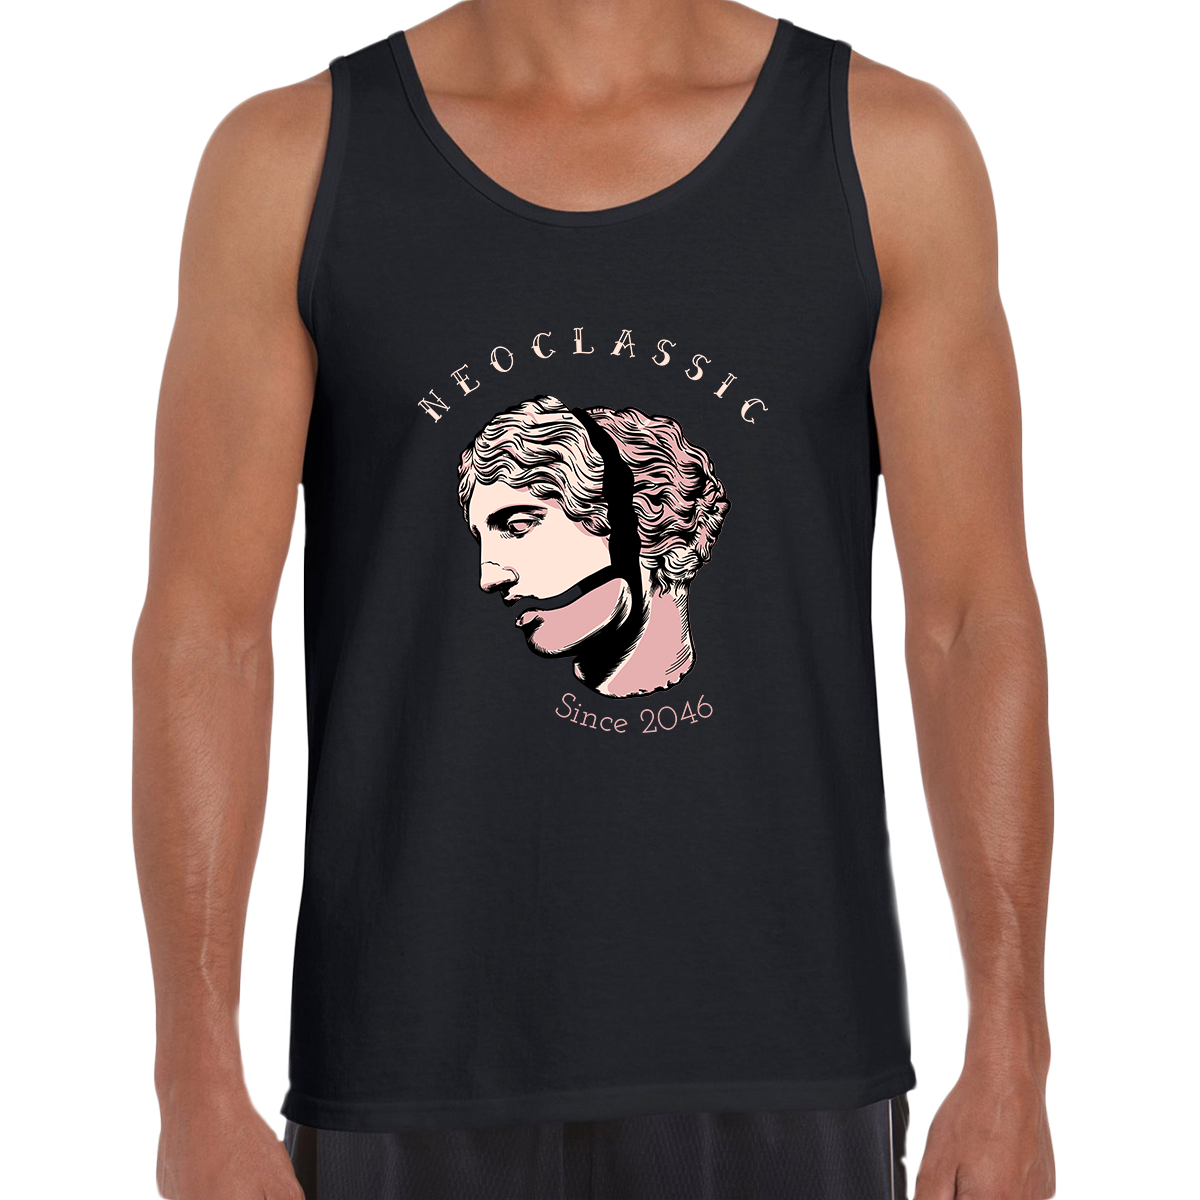 NeoClassic Unique Antic Sculpture Abstract Unisex Black Tank Top